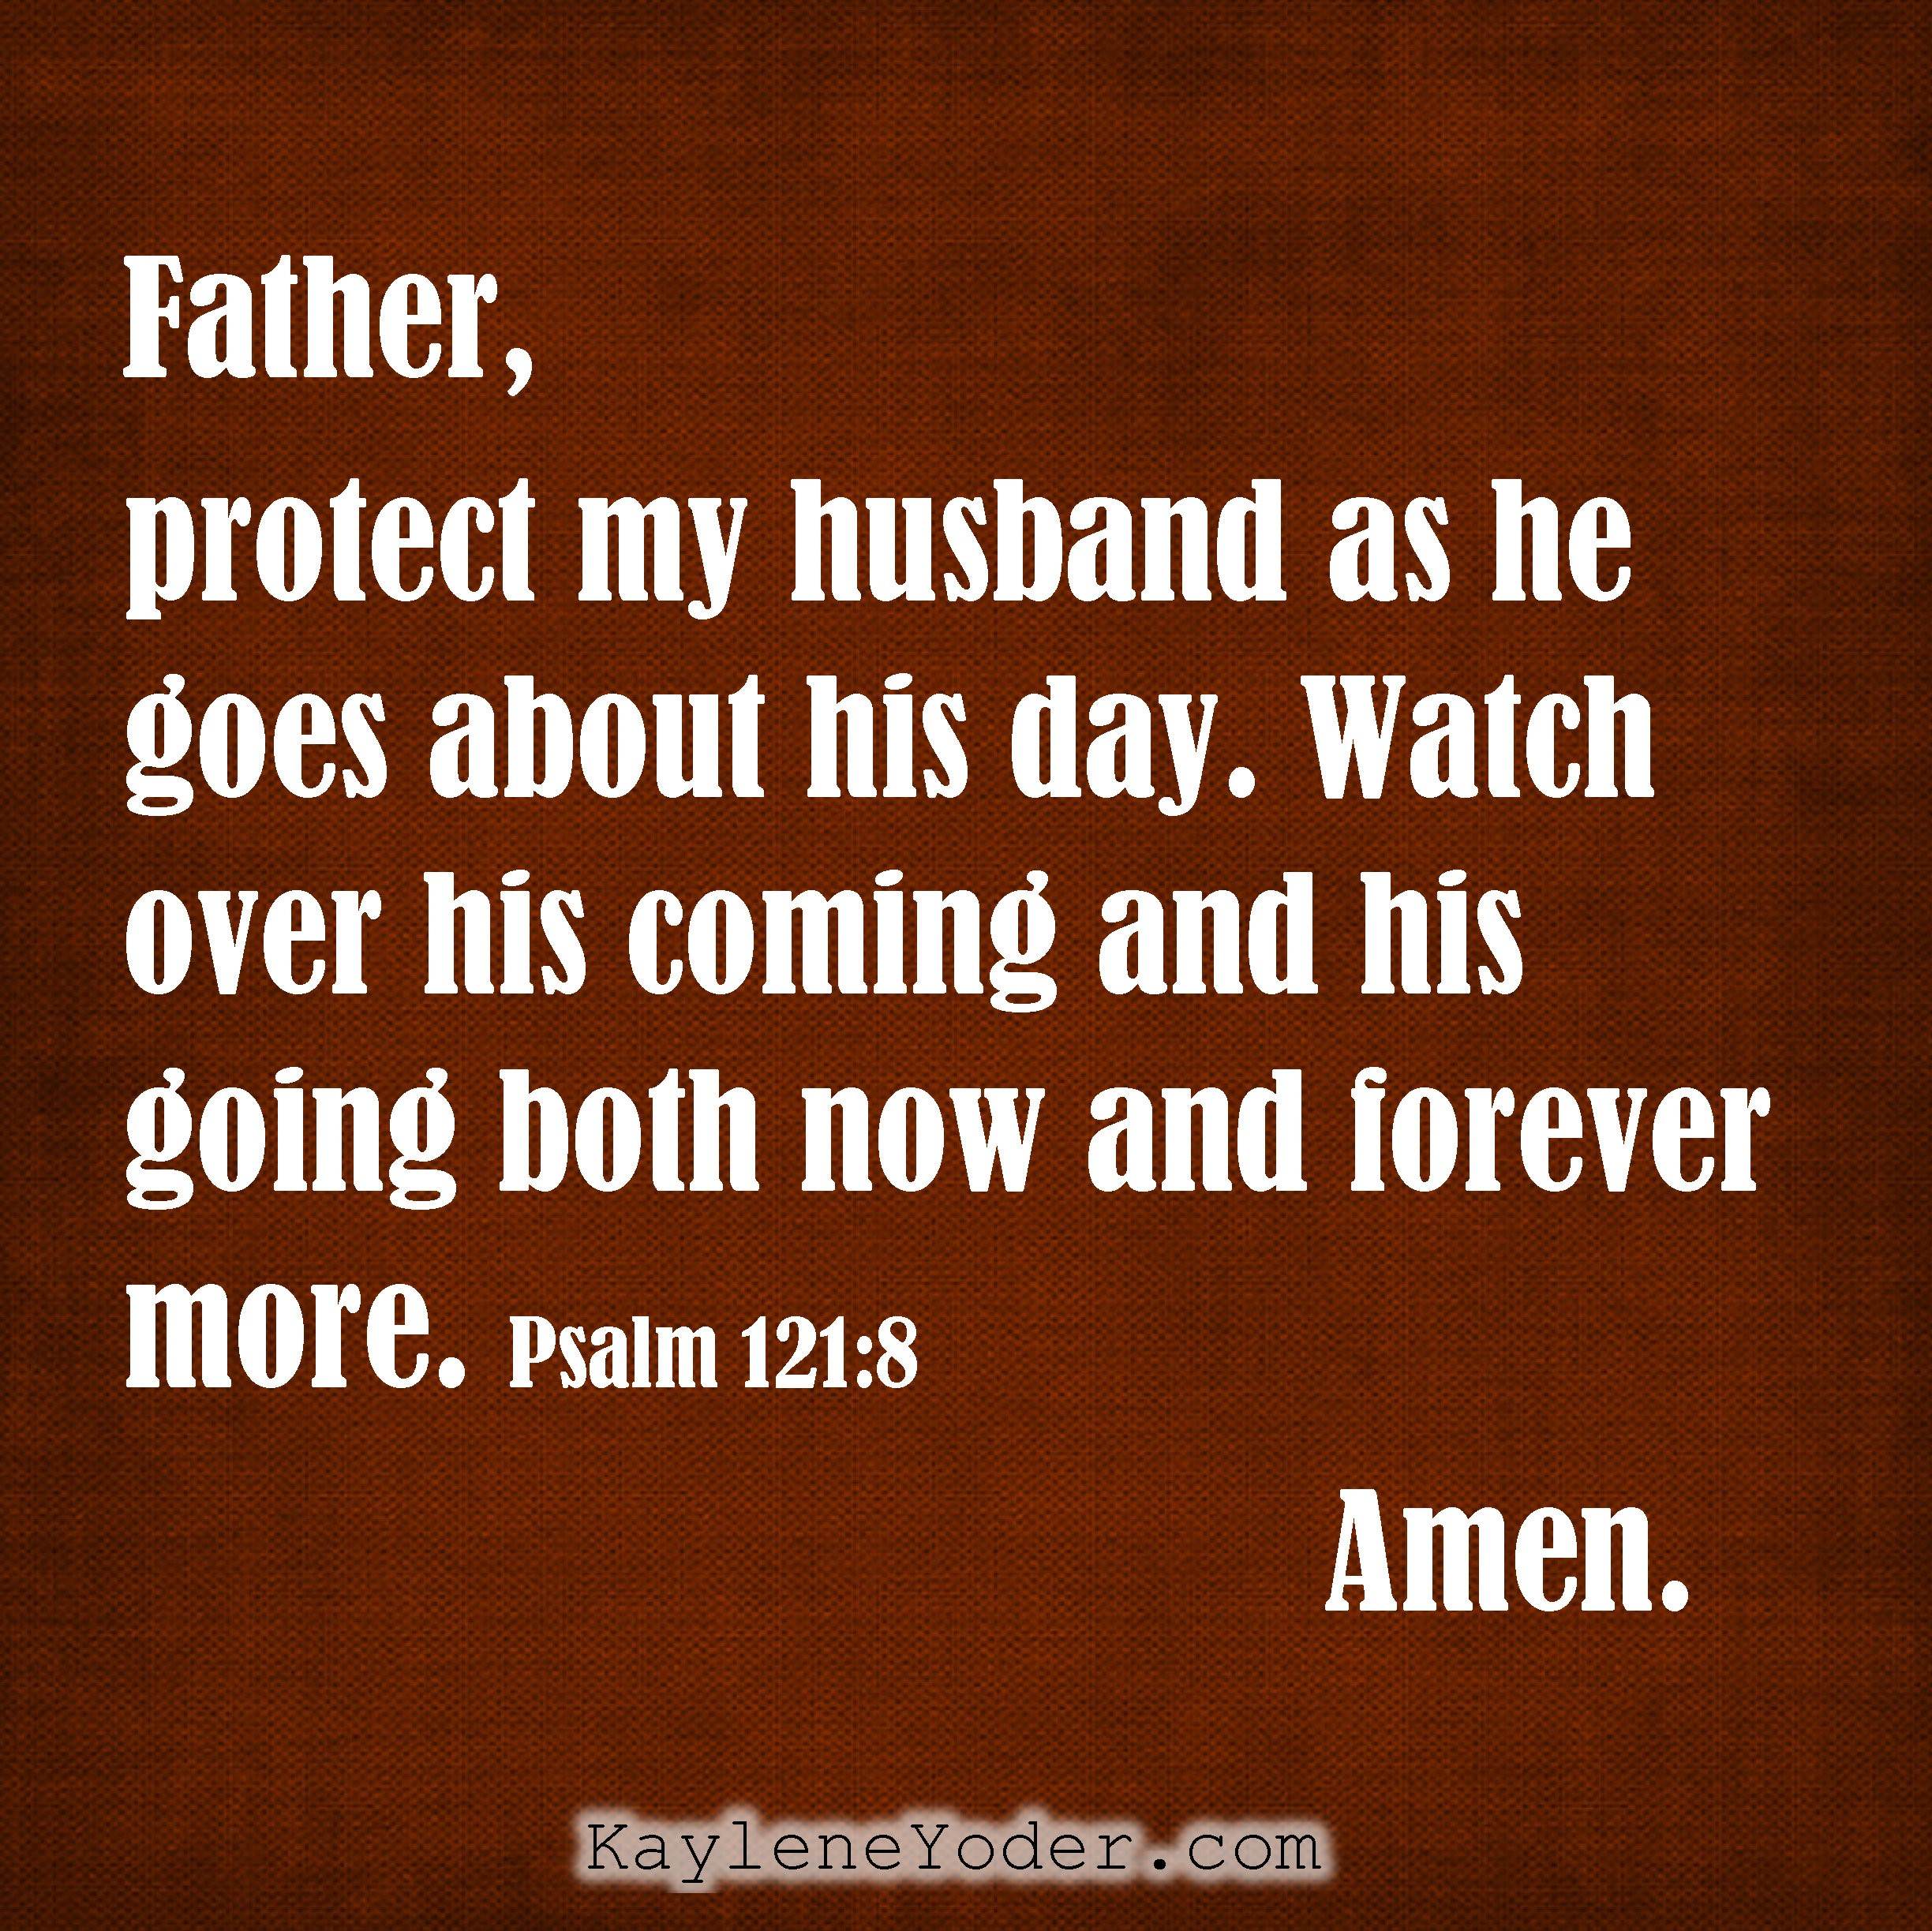 A Prayer for our Husband's Protection - Kaylene Yoder